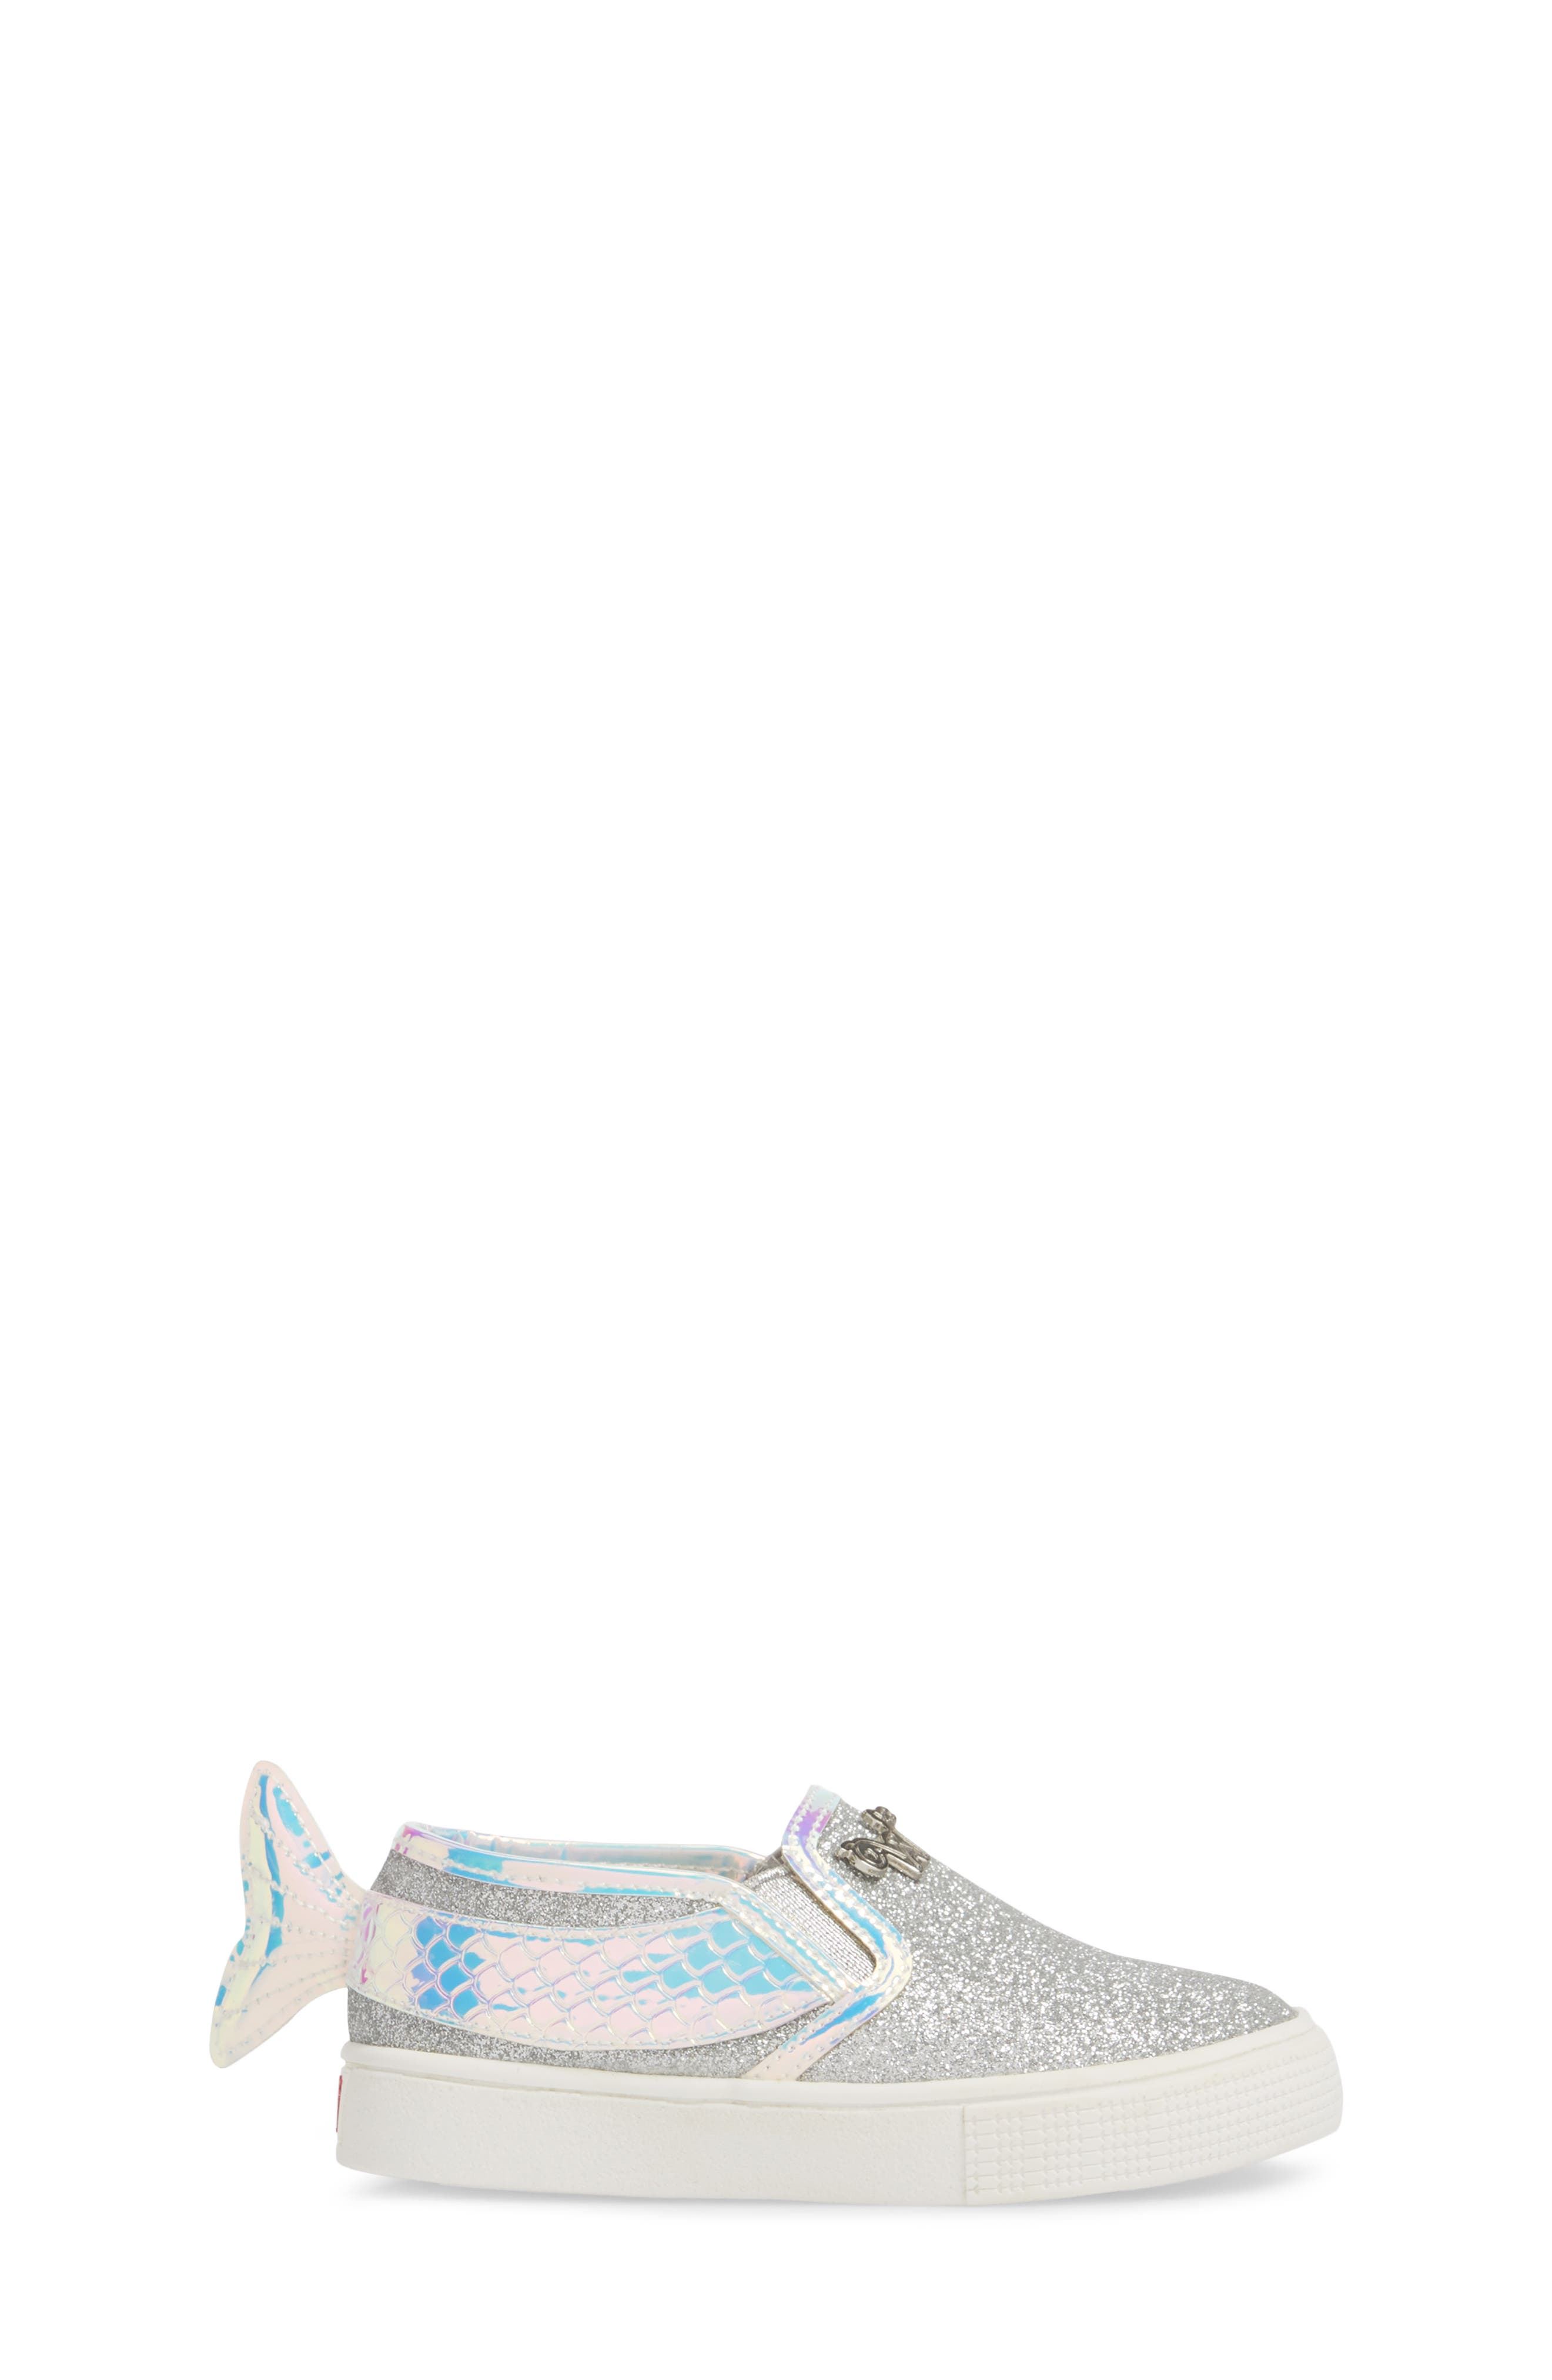 Camille Mermaid Glitter Sneaker,                             Alternate thumbnail 3, color,                             040